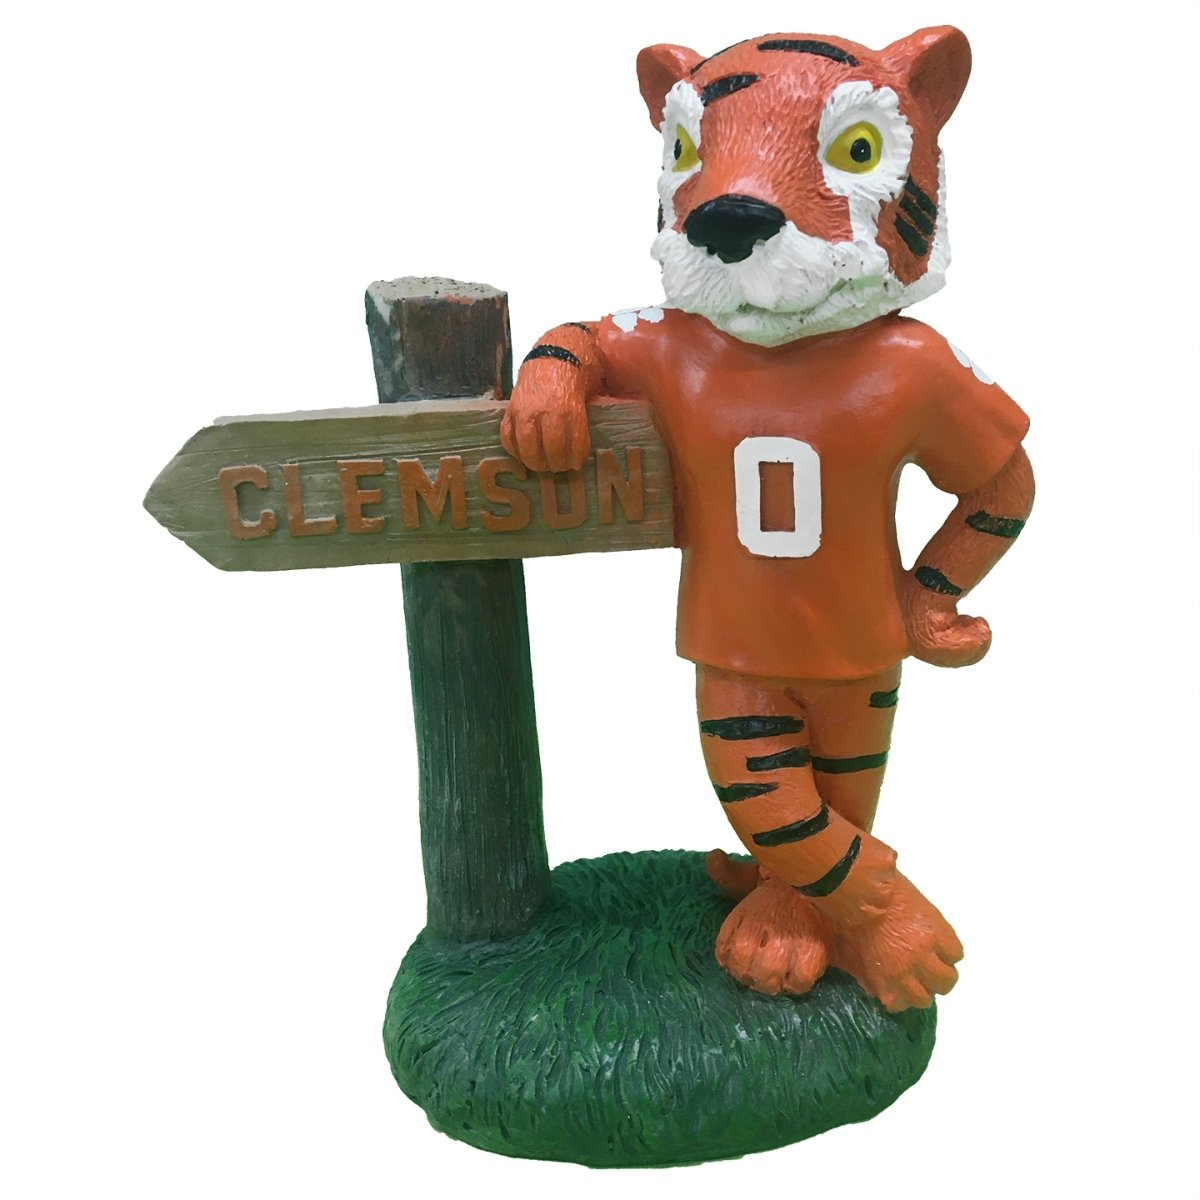 Garden Figurine - Mascot With Sign and Orange Shirt 10'' - Mr. Knickerbocker